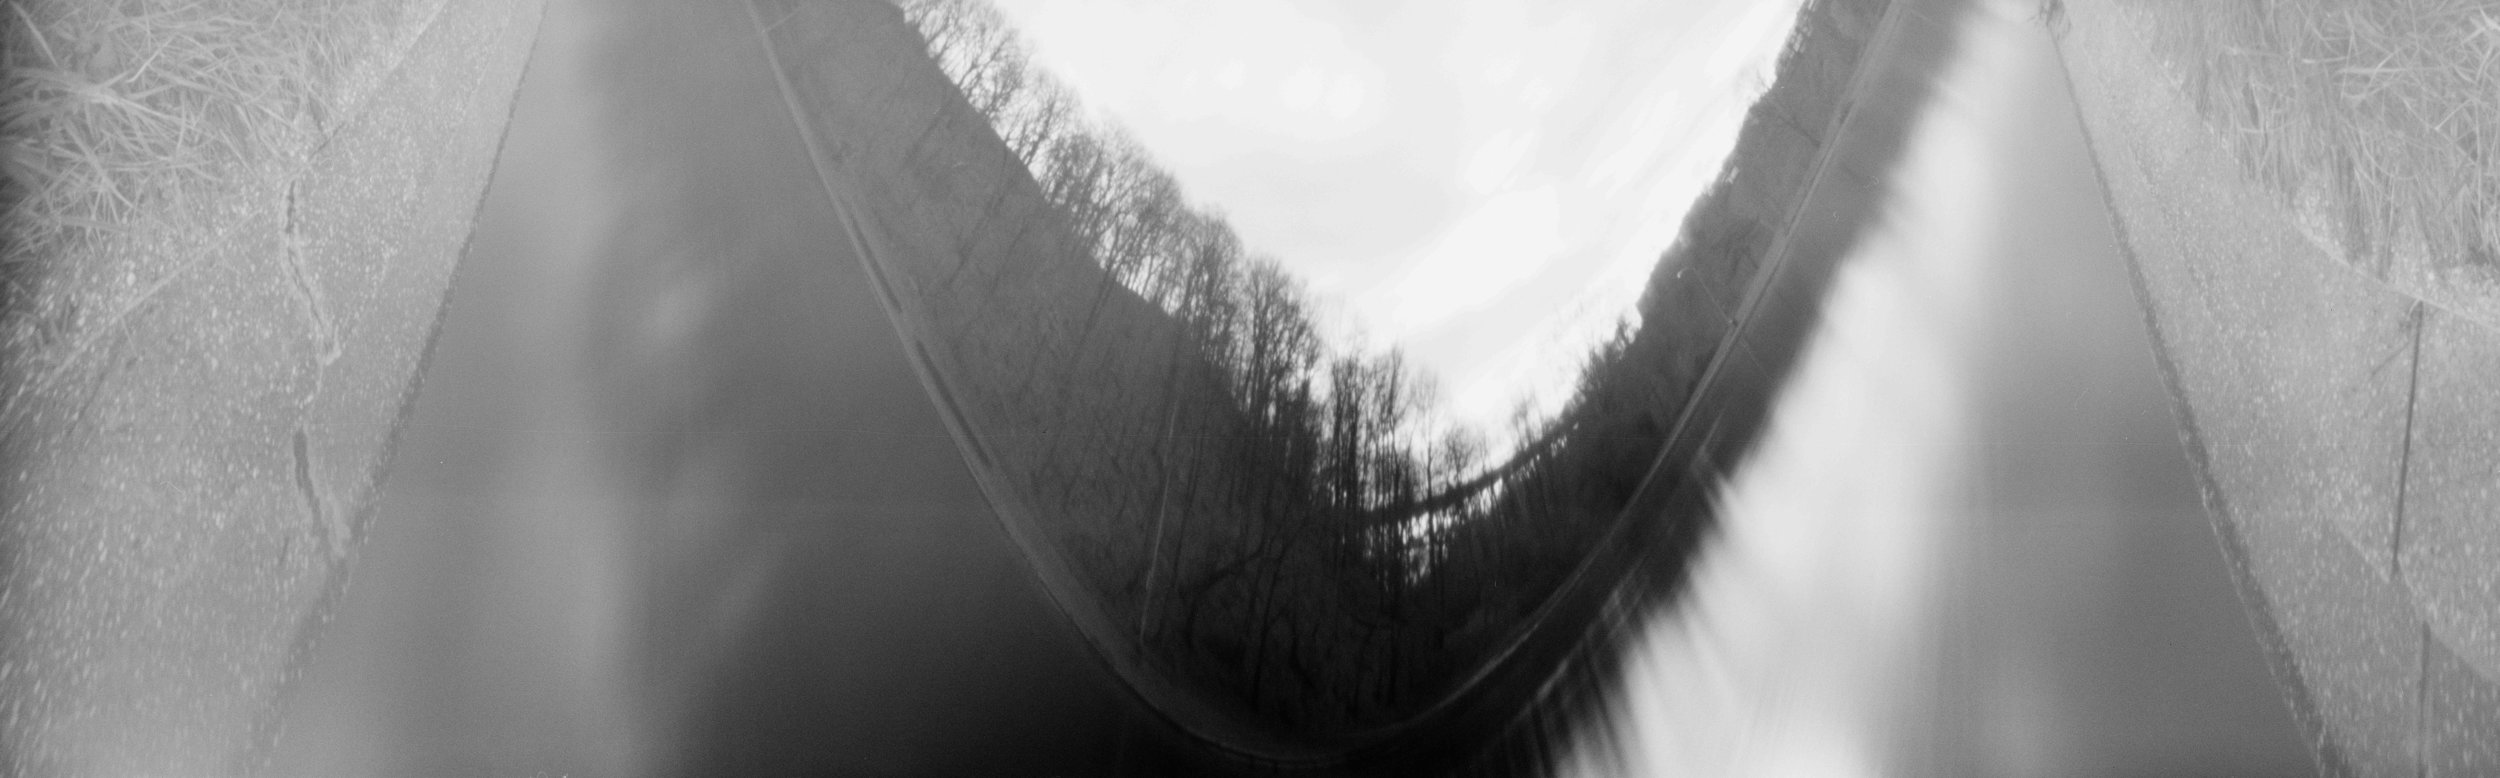 Panther Hollow Lake, Pinhole camera